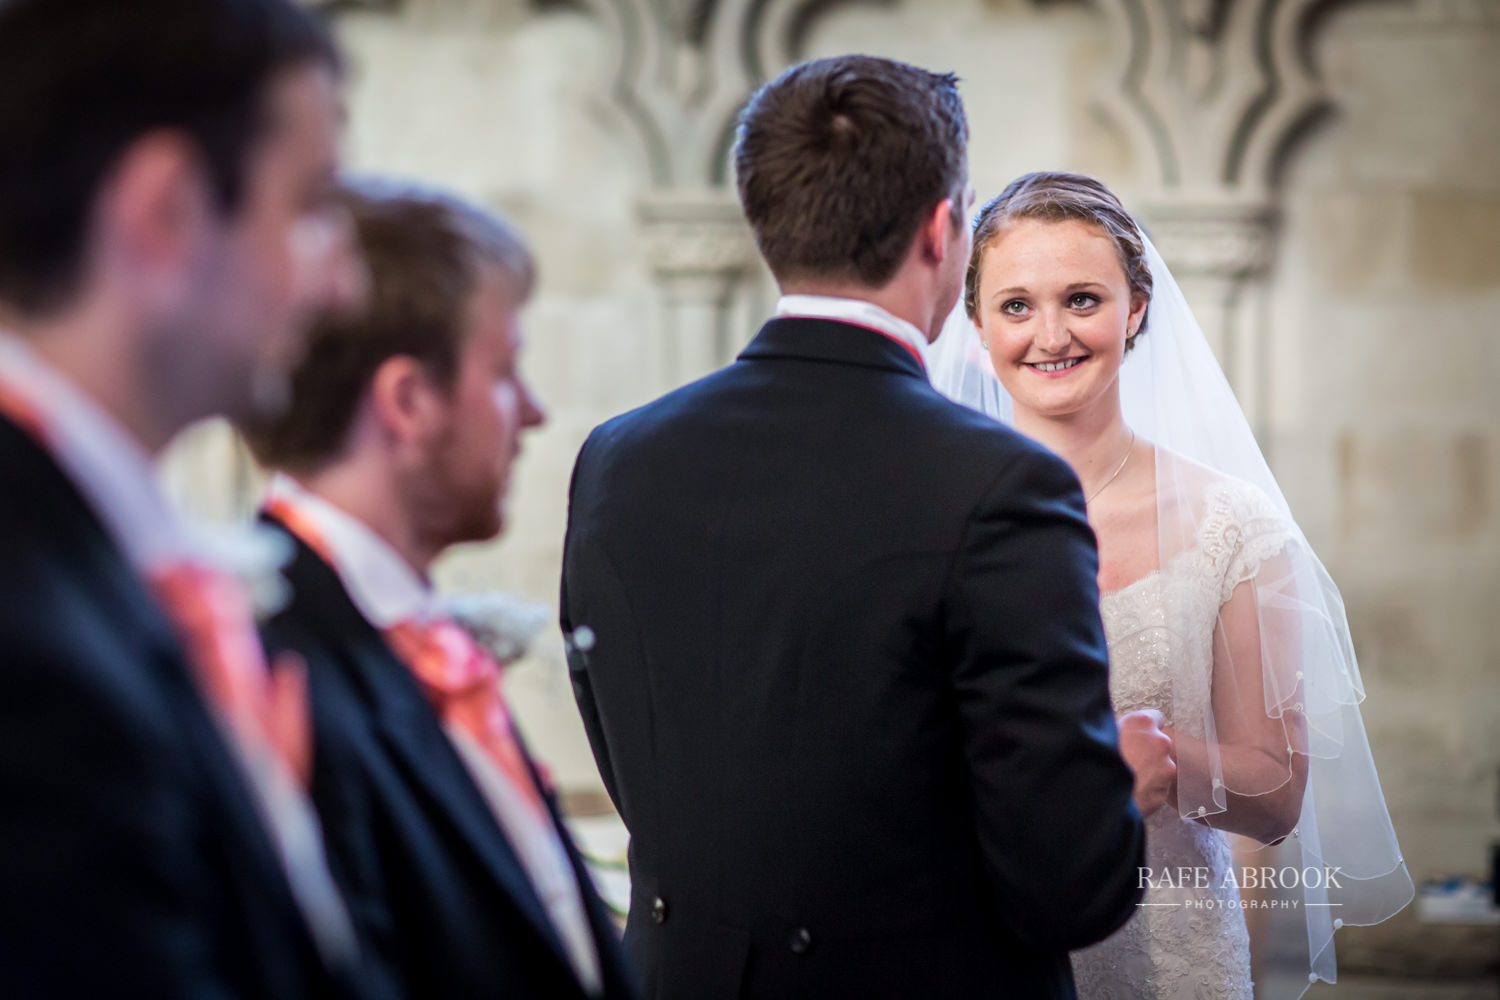 st albans cathedral wedding harpenden rafe abrook photography hertfordshire wedding photographer-1020.jpg